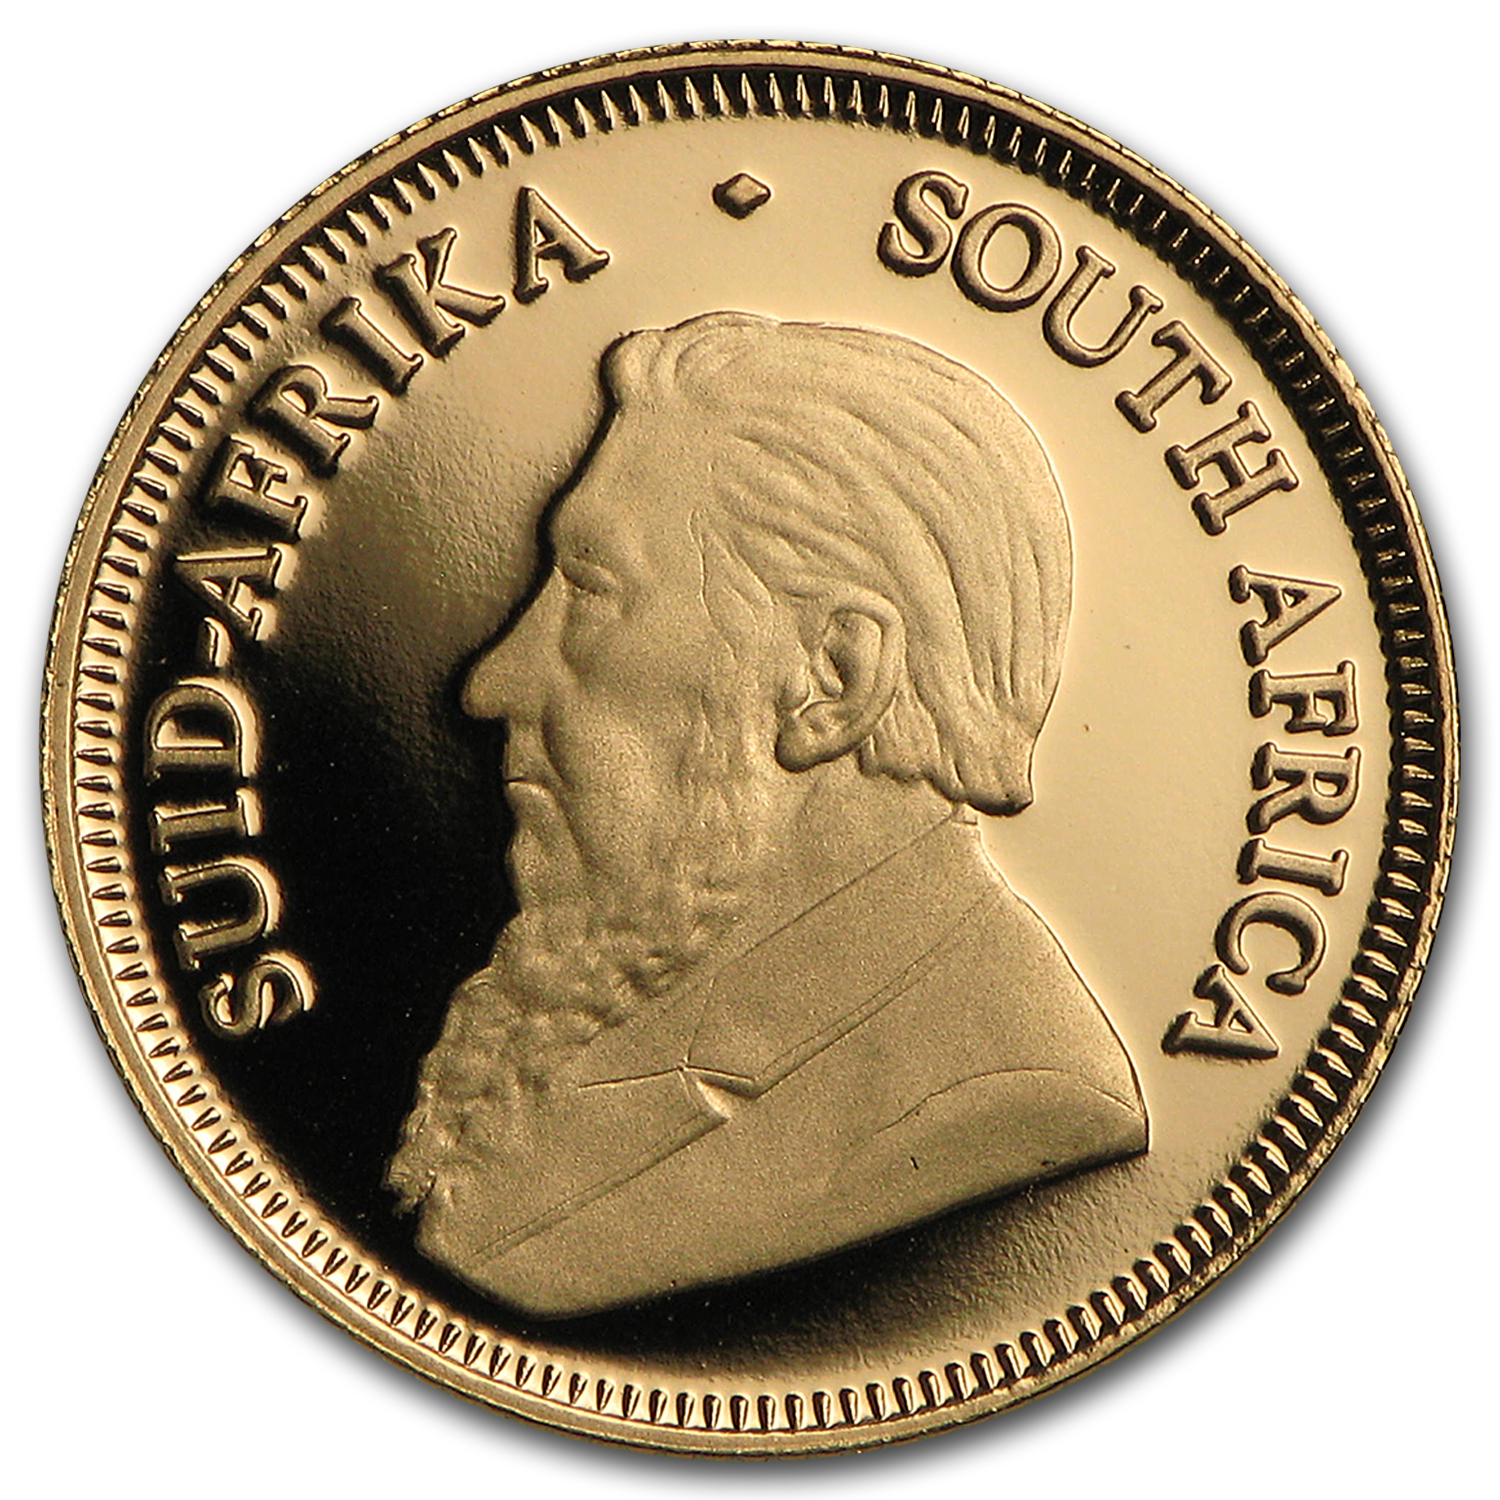 2016 South Africa 1/10 oz Proof Gold Krugerrand